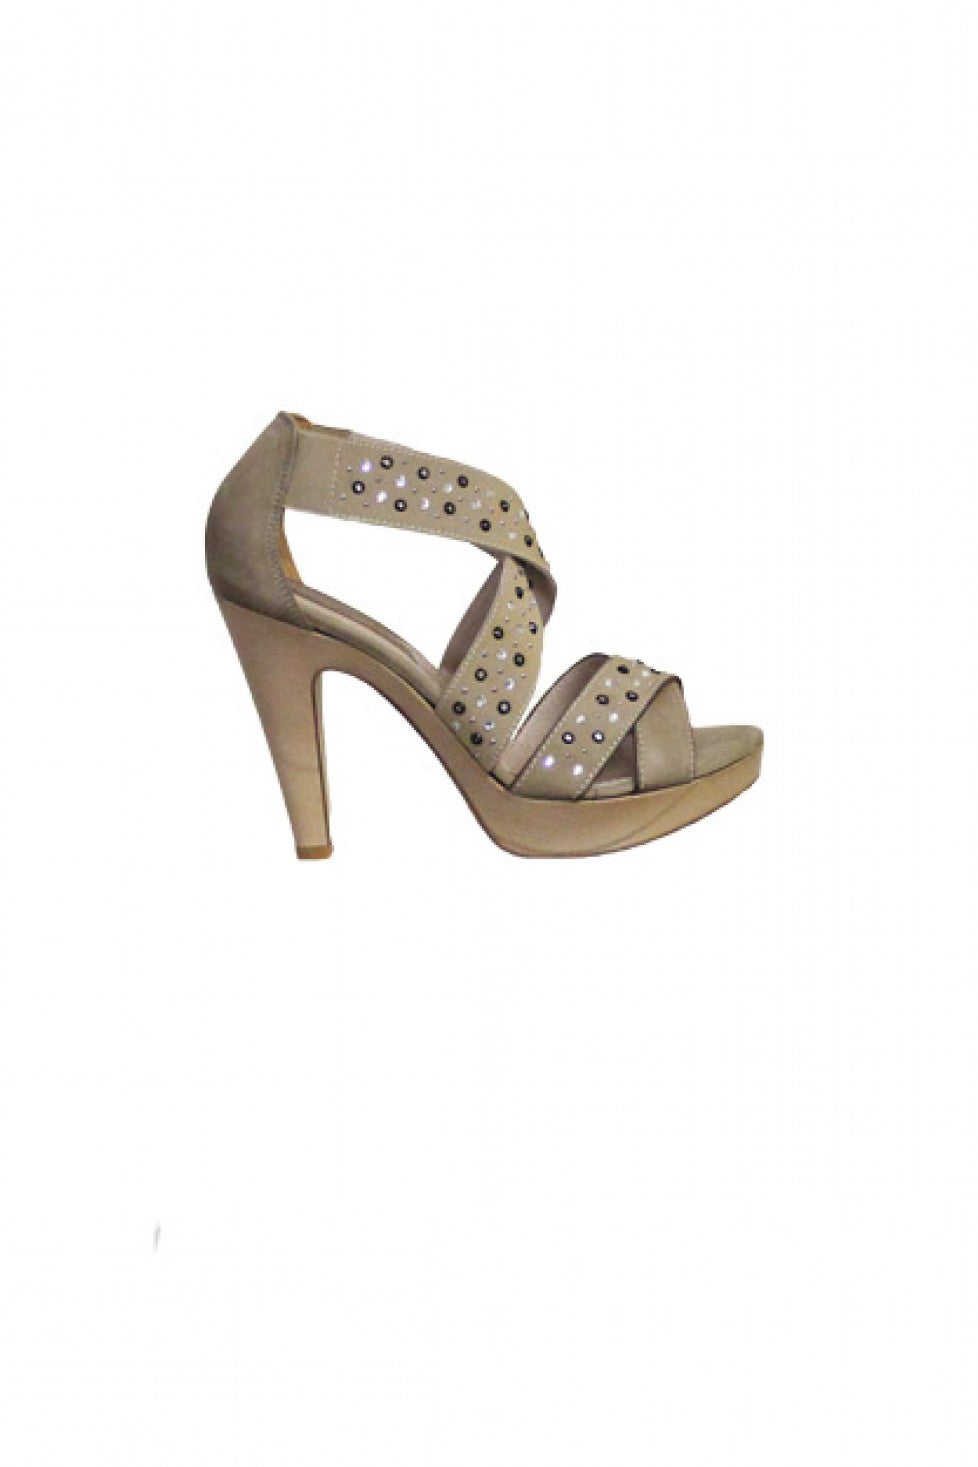 Tan Studded Progetto Sandal Heel Style and Grace